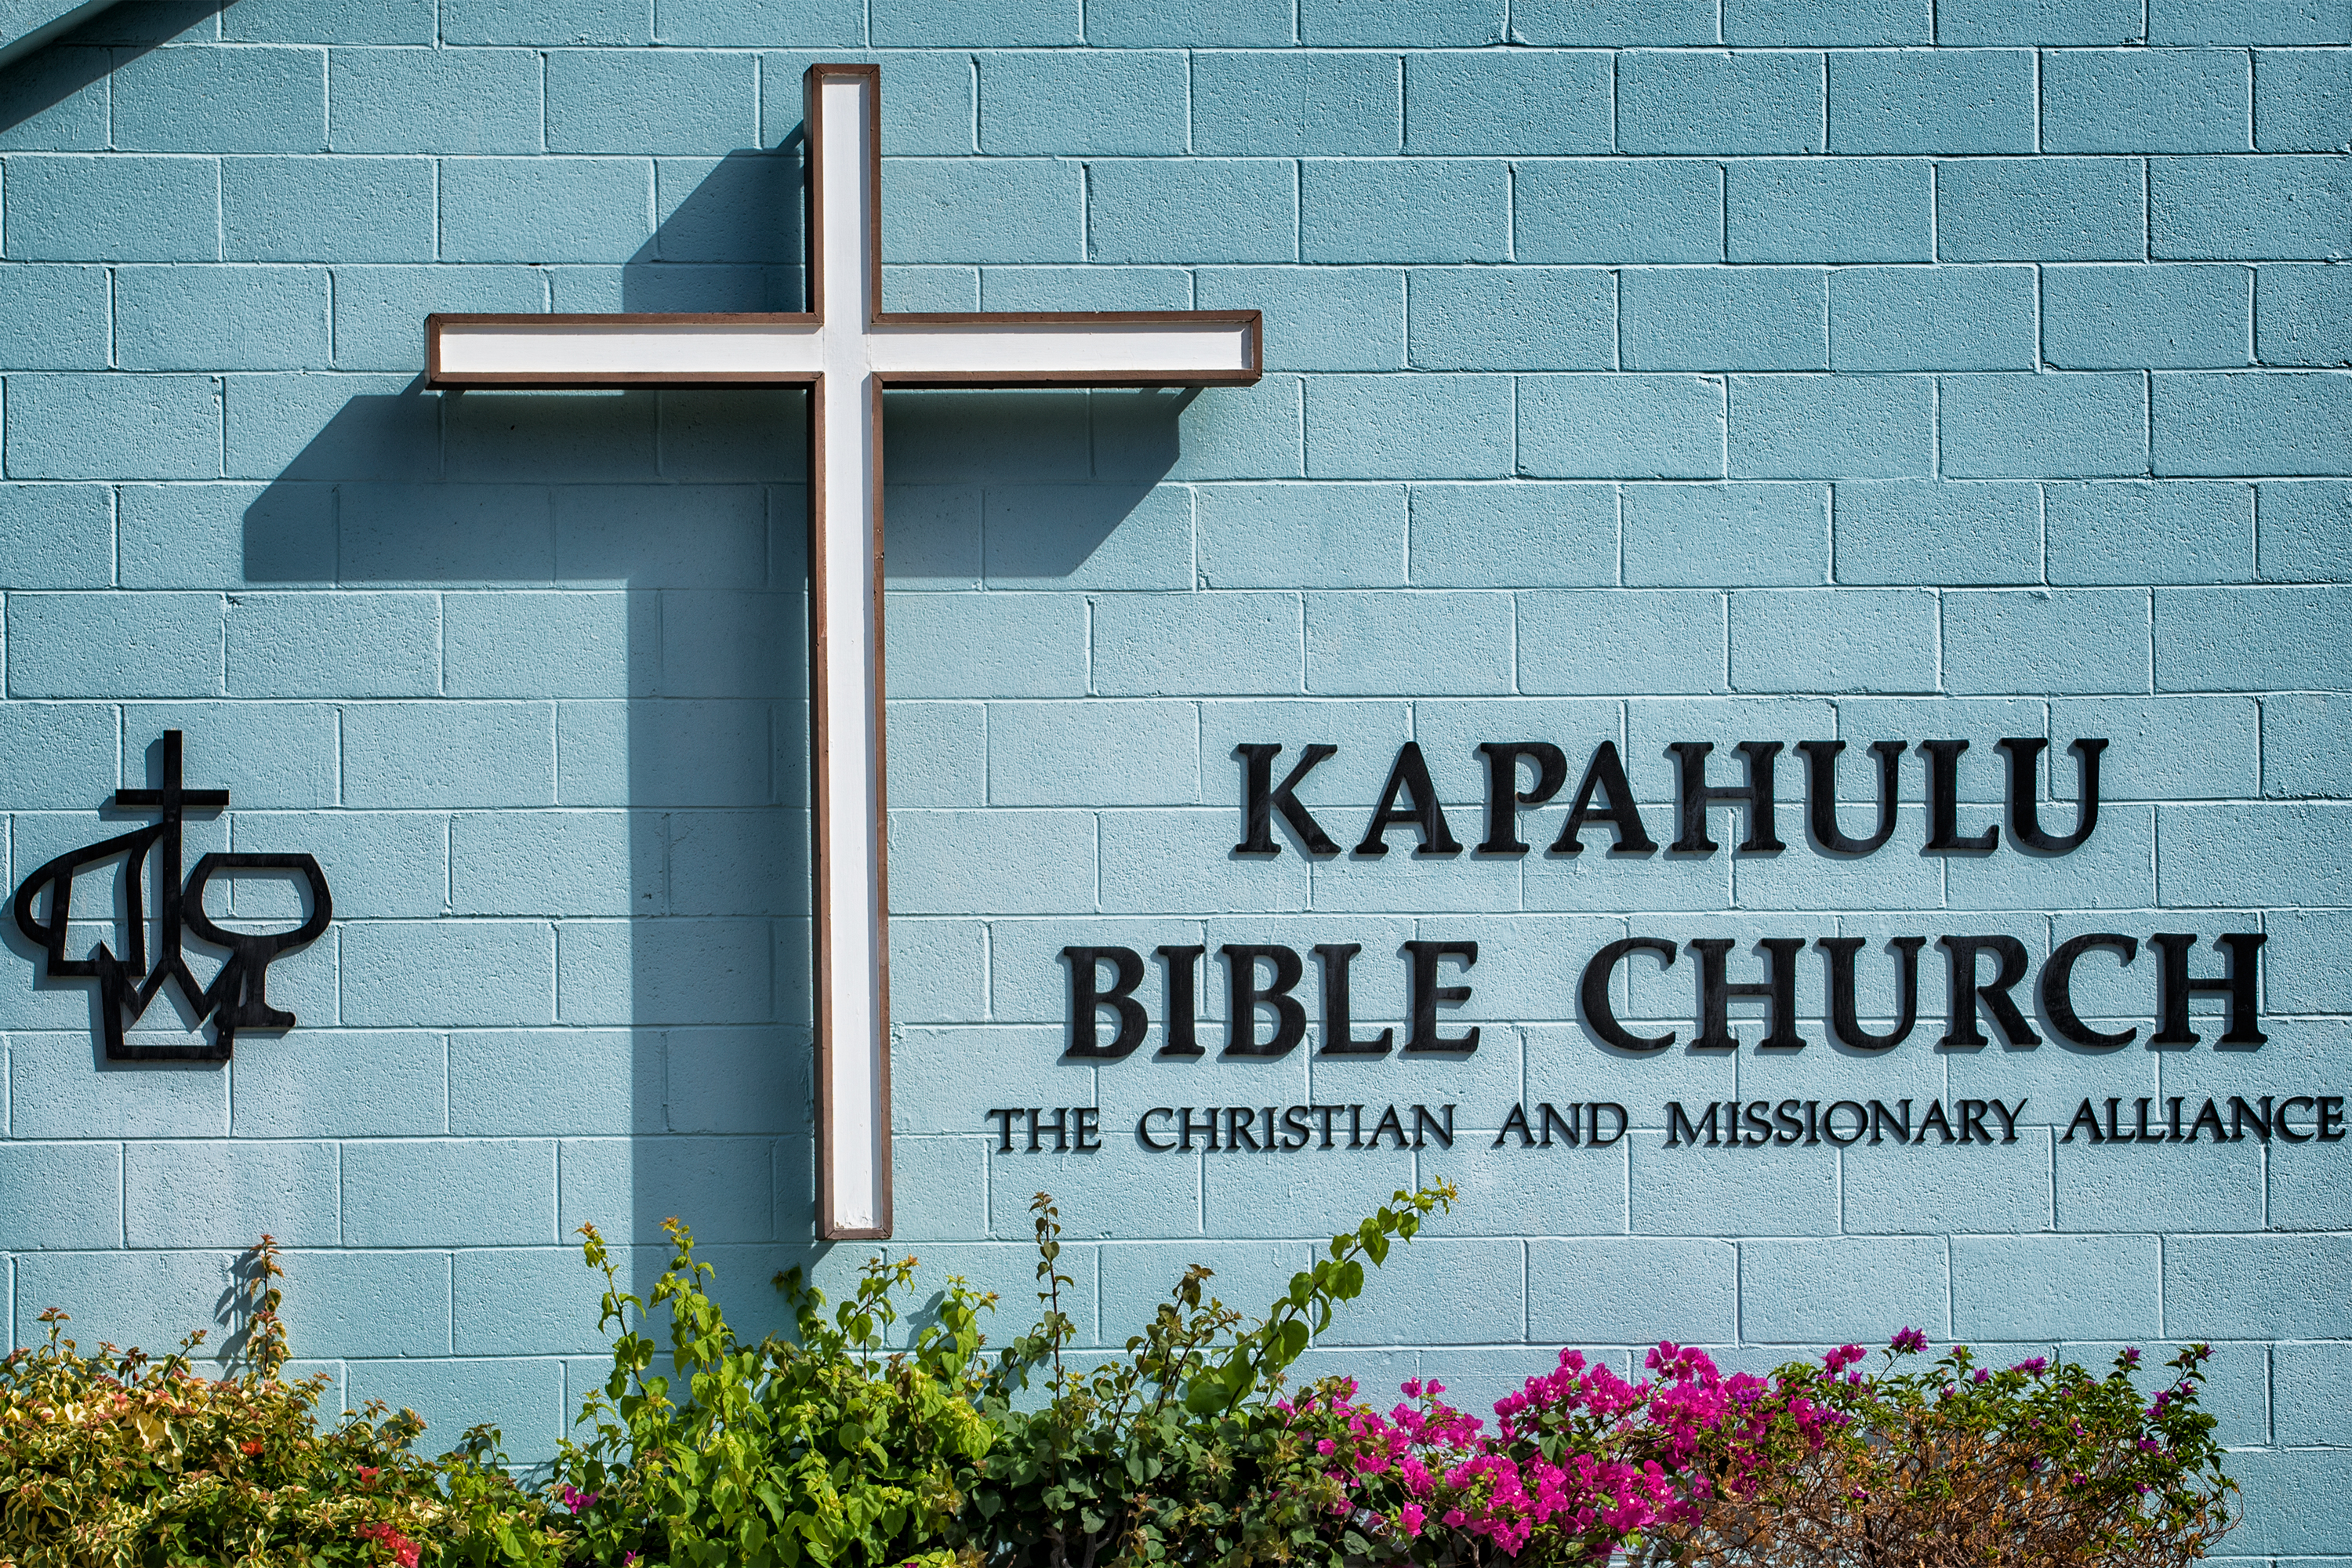 Kapahulu Bible Church